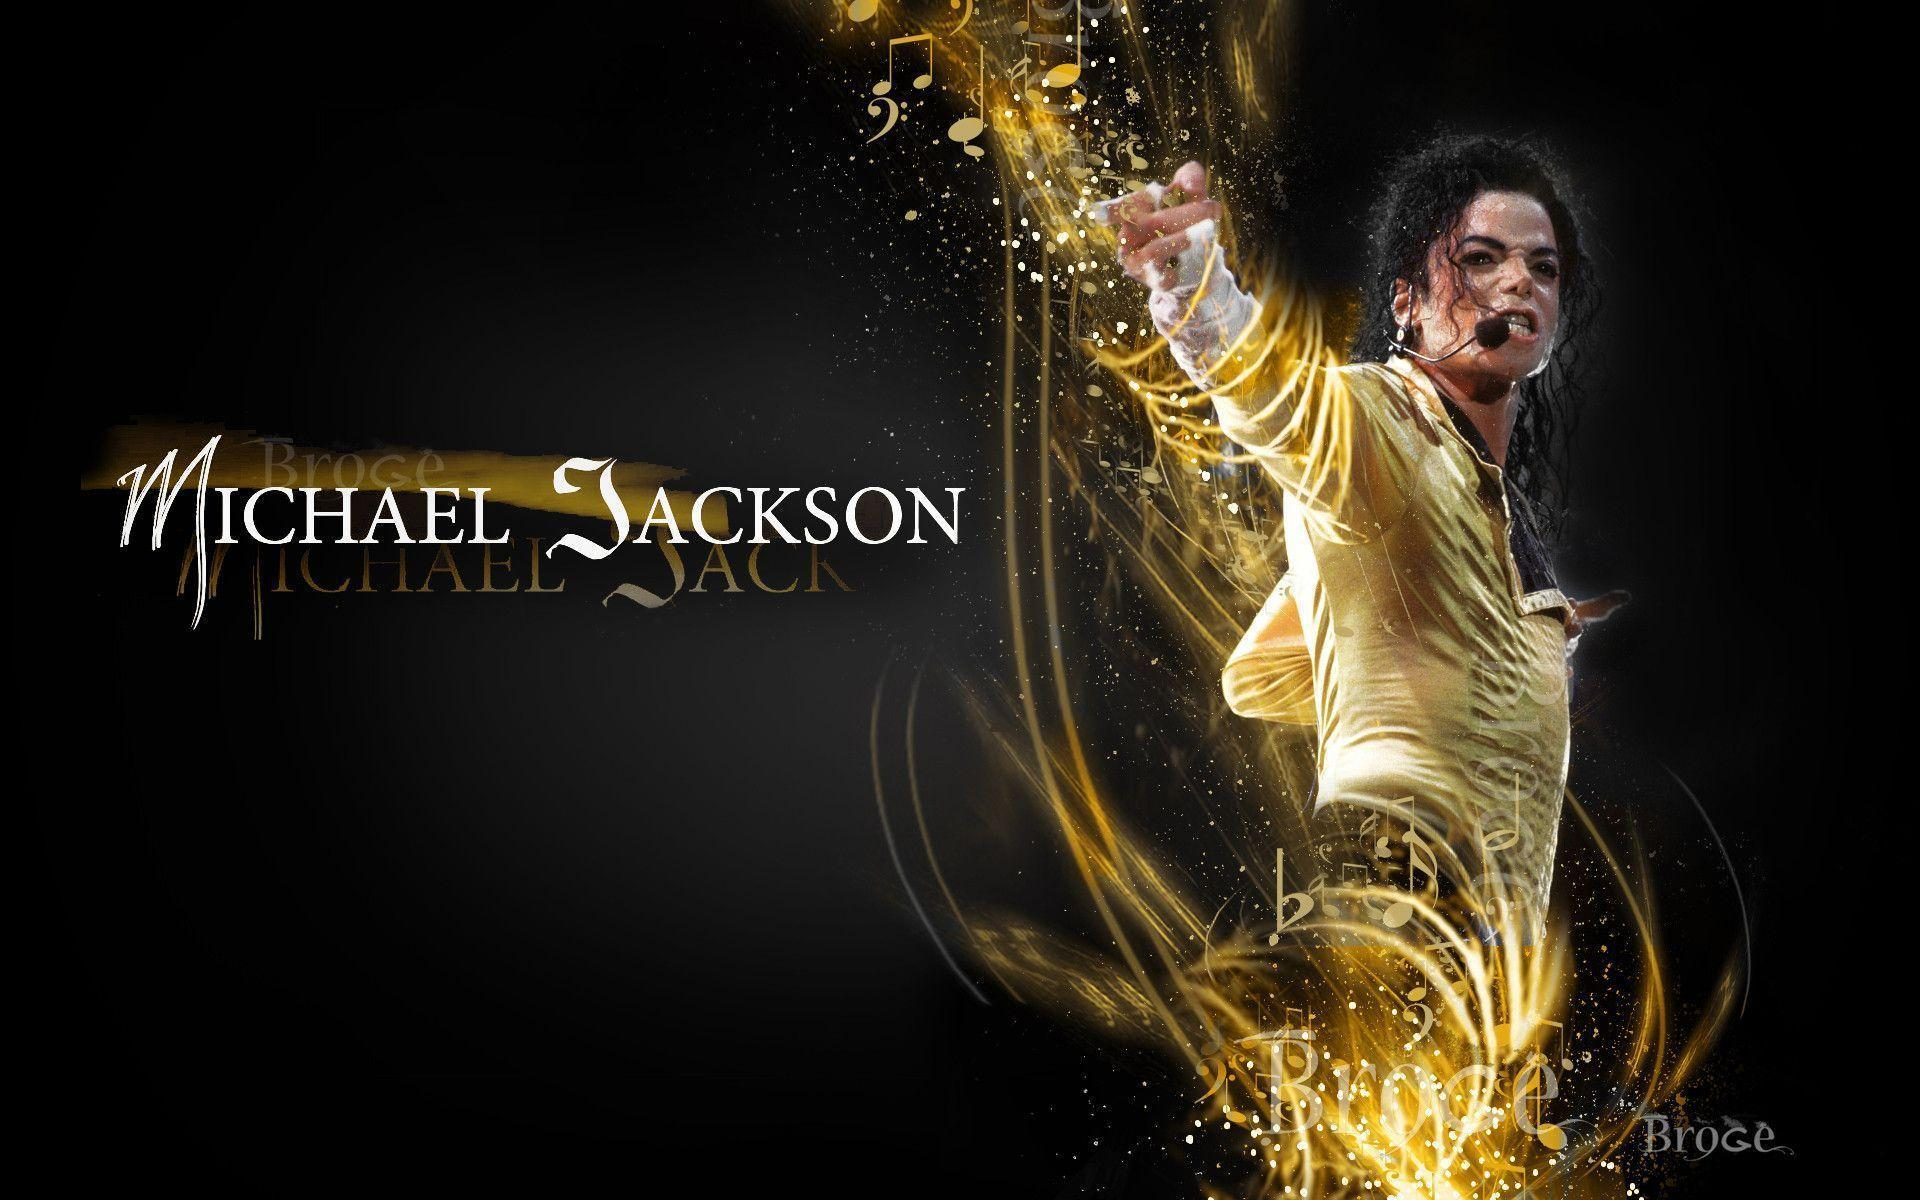 Michael Jackson Wallpapers   High Definition Wallpapers